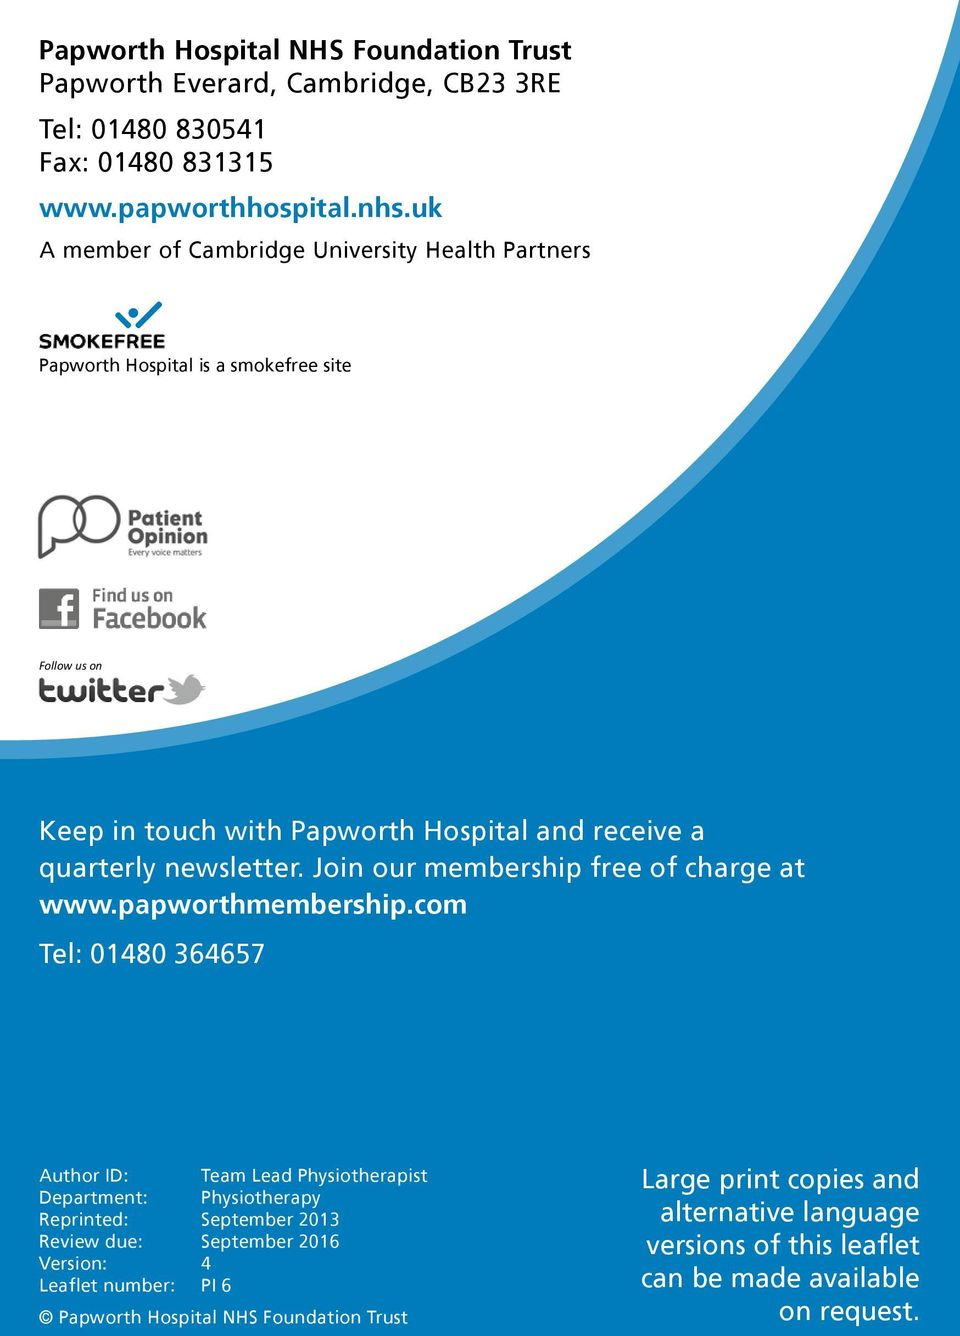 newsletter. Join our membership free of charge at www.papworthmembership.